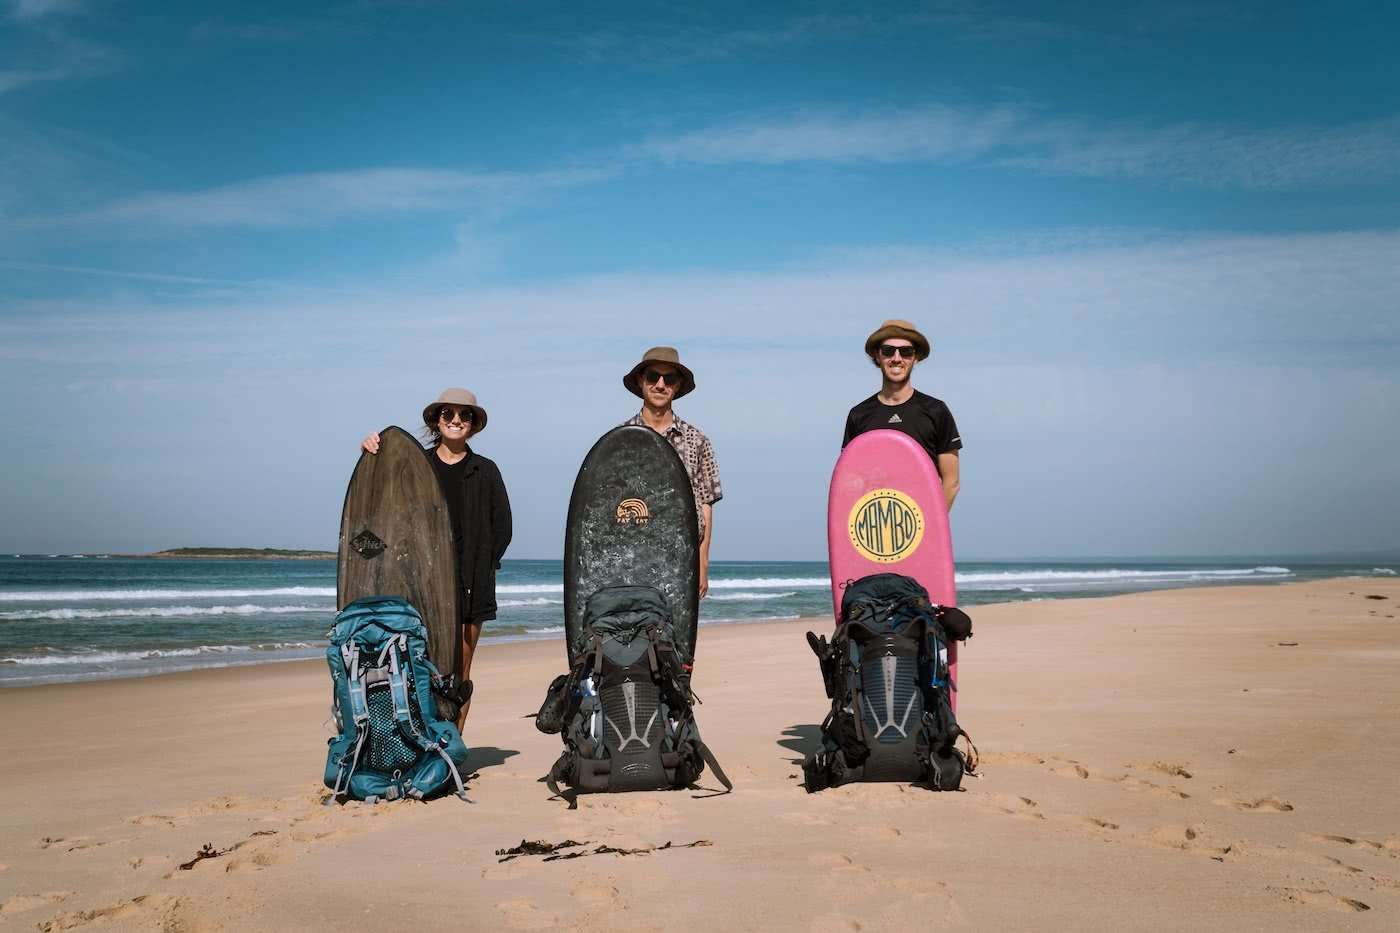 A Wilderness Surfari In Remote East Gippsland (VIC/NSW) by Jake, Sam and Georgia Doherty Osprey Adventure Grant, surf boards, beach, backpacks